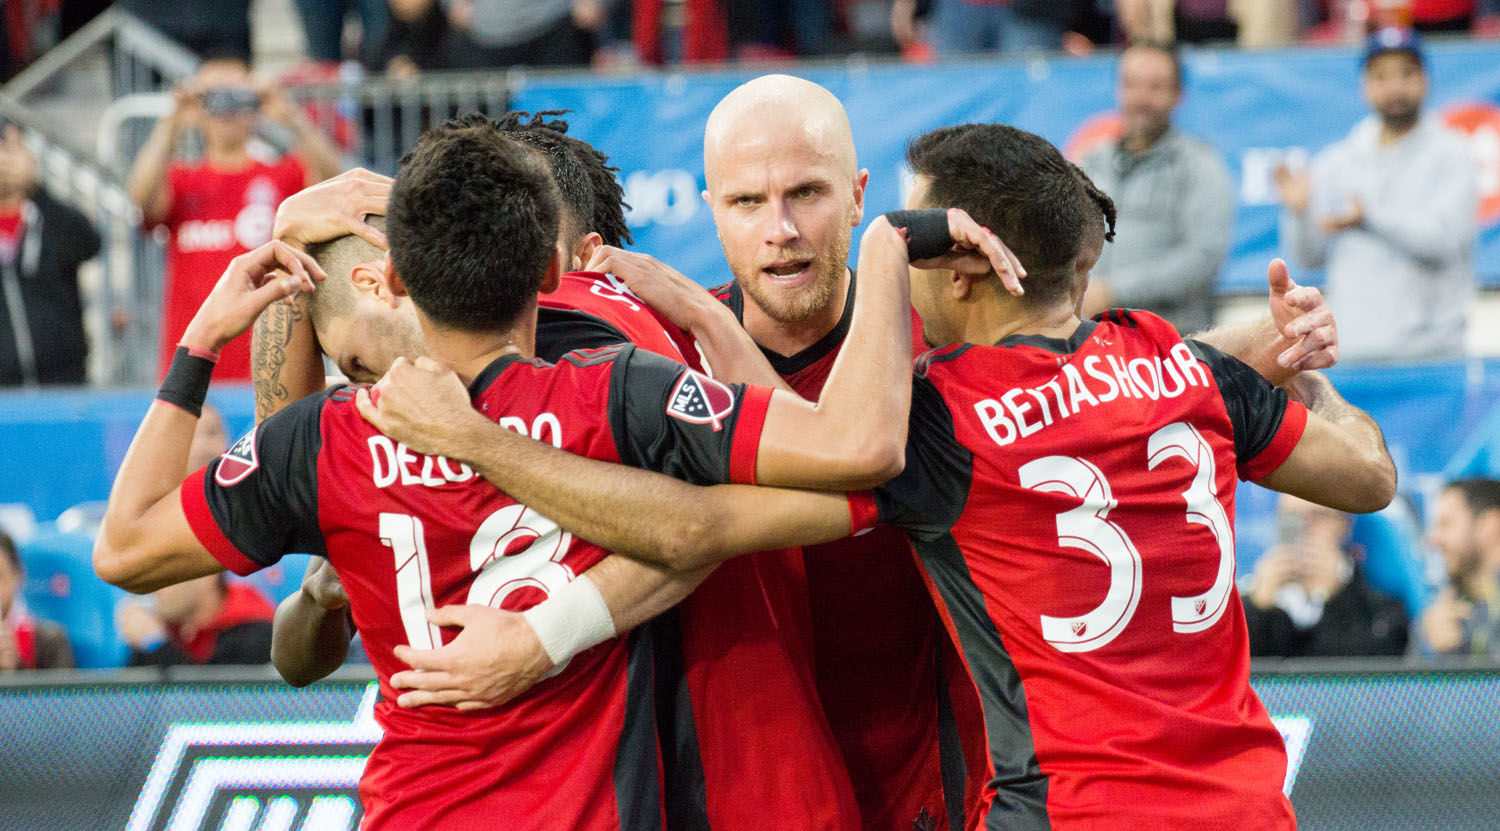 Michael Bradley, Marky Delgado and Steven Beitashour celebrating another goal during a Major League Soccer match in May 2017. Image by Dennis Marciniak.